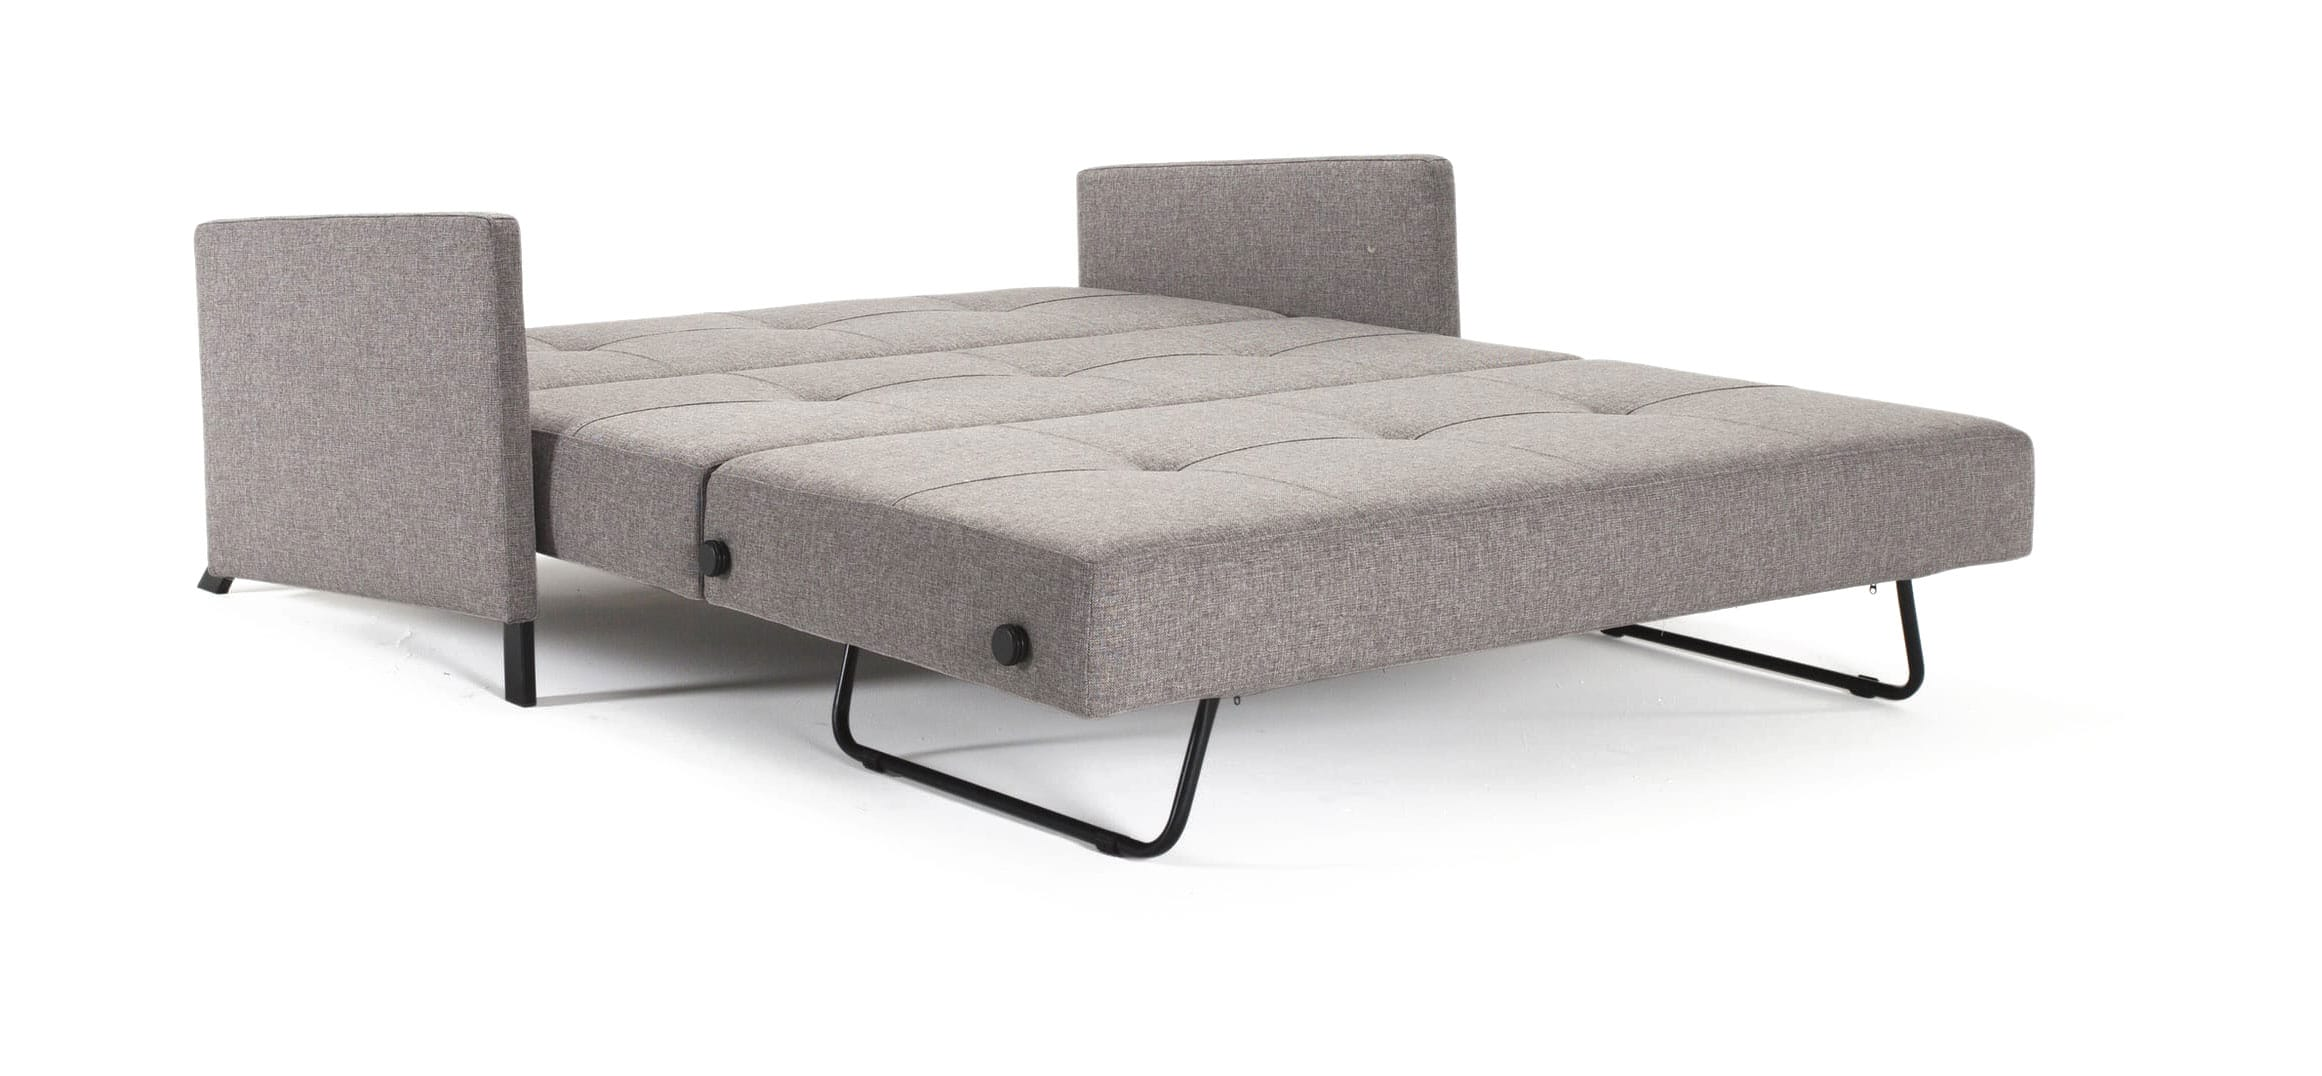 Cubed Deluxe Sofa Bed wArms Queen Size Mixed Dance Gray by